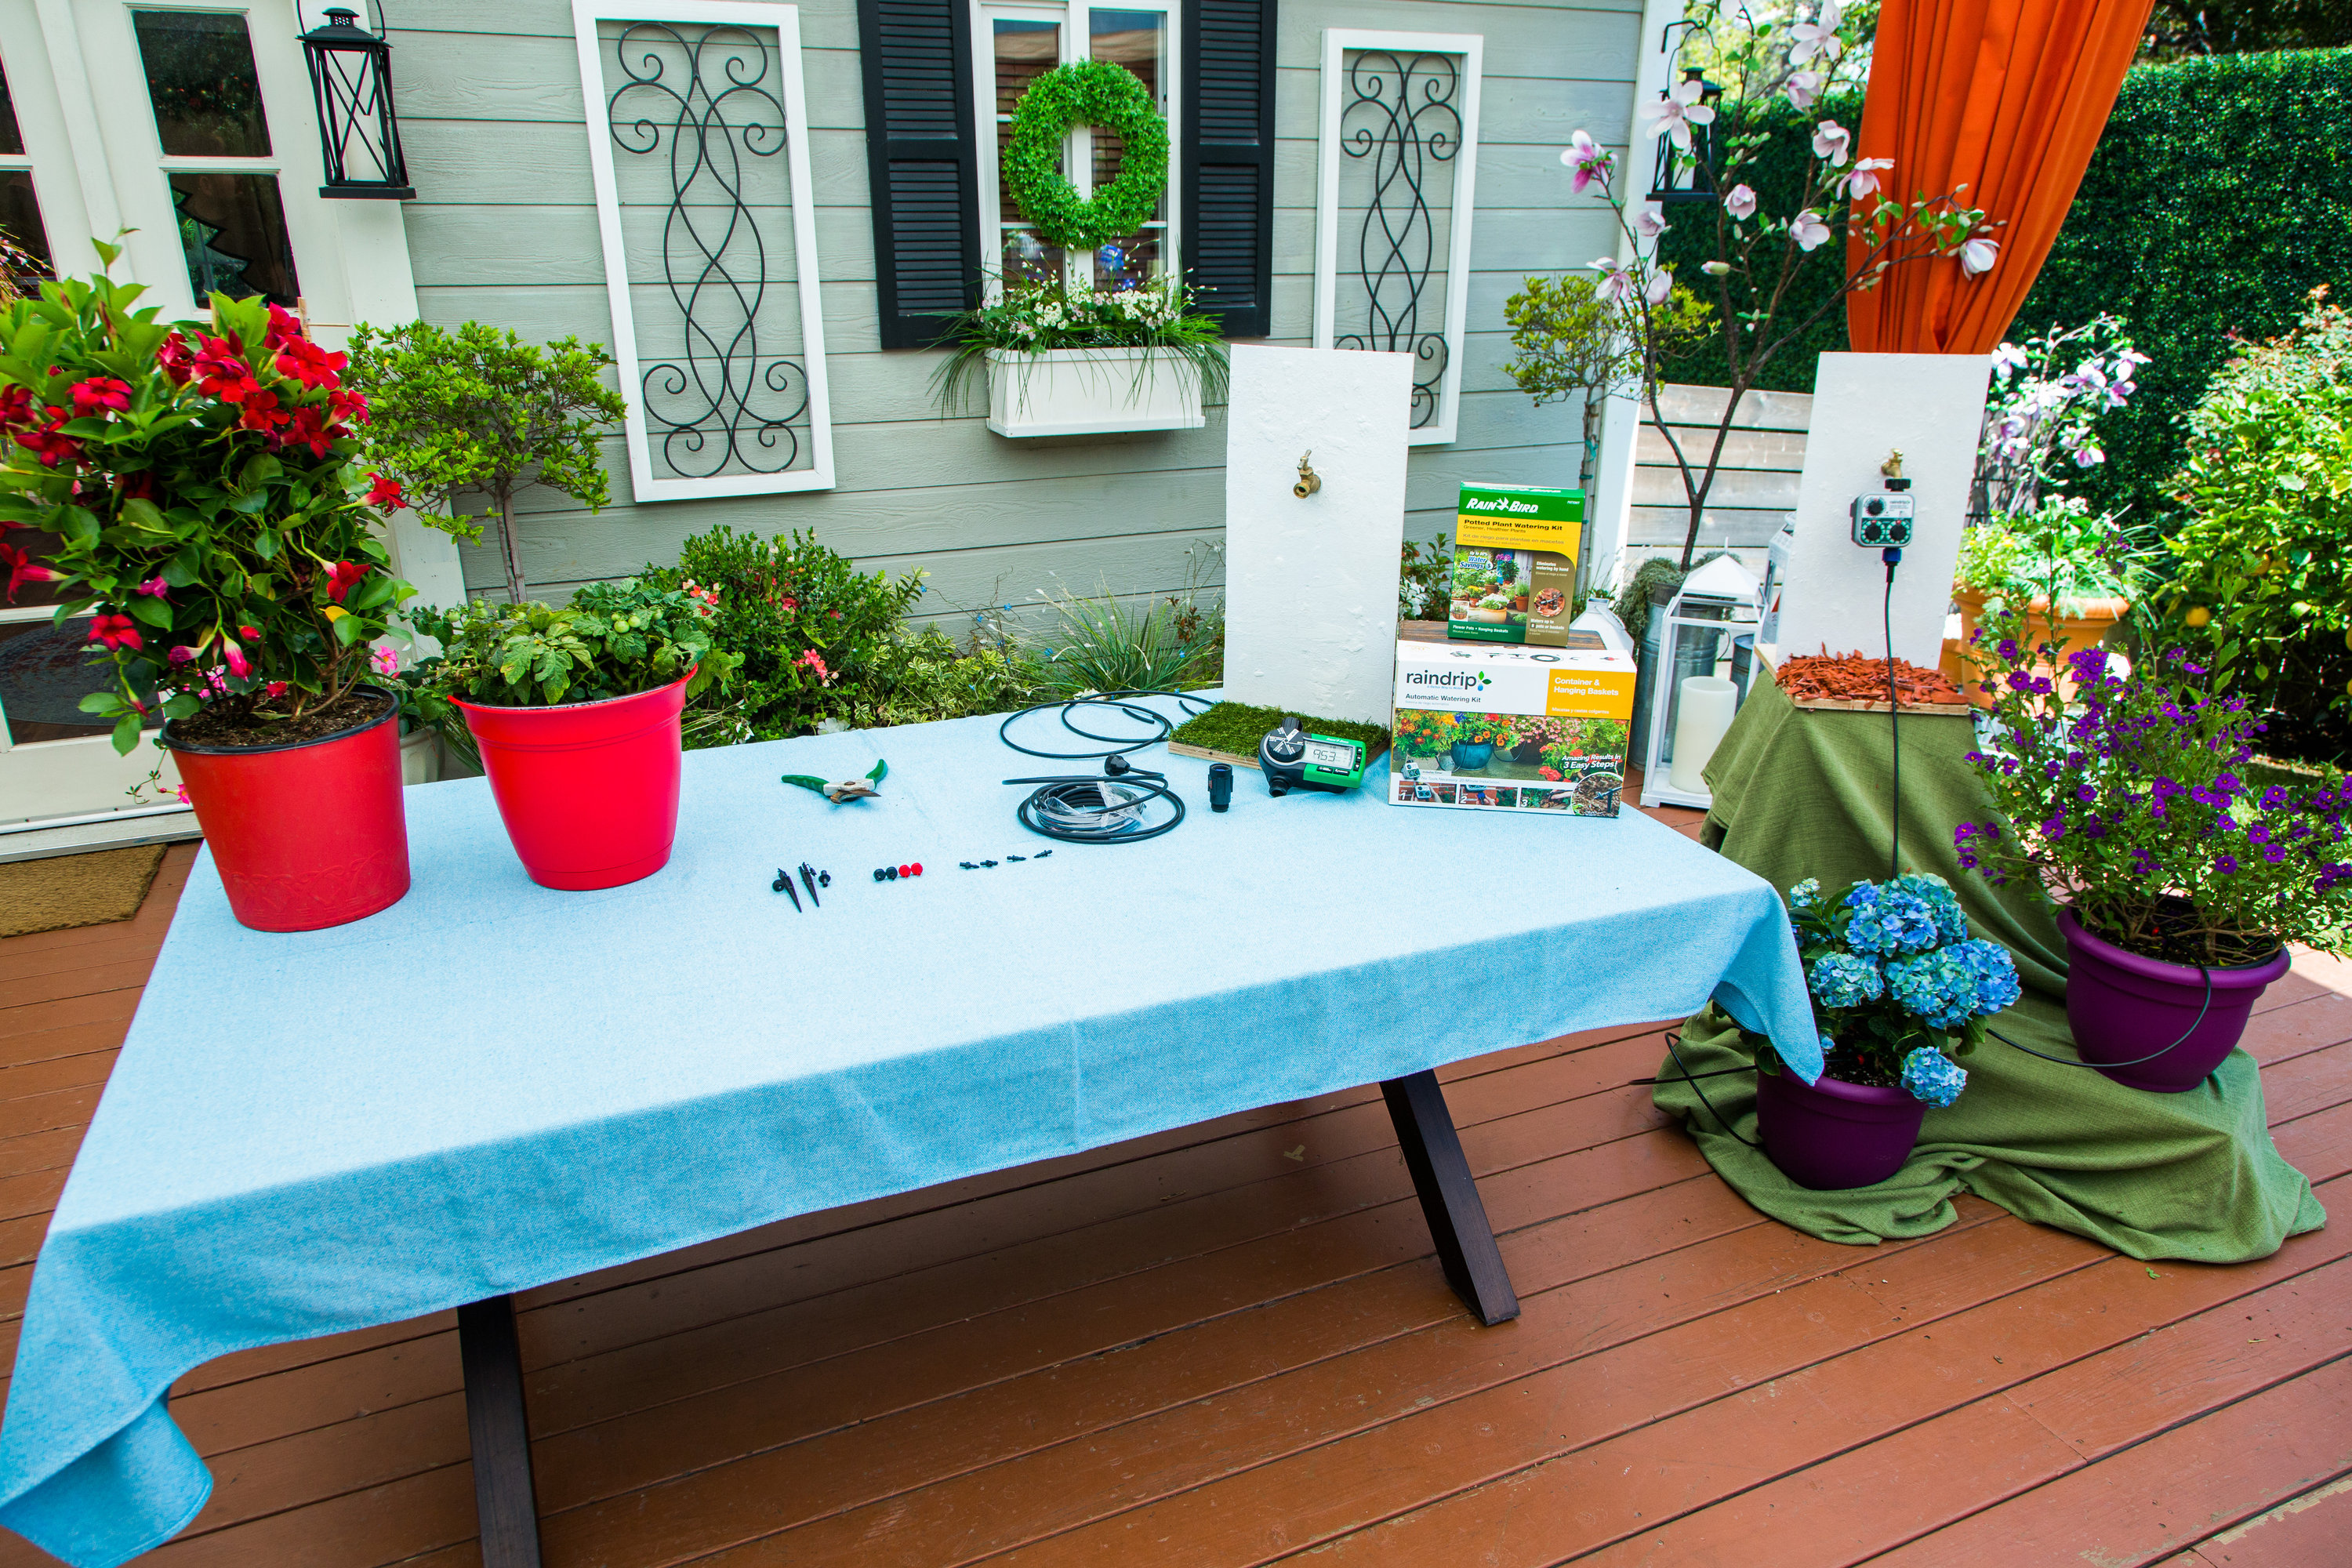 How To - How to Water Plants While on Vacation | Hallmark Channel Watering Potted Plants On Vacation on self watering plants on vacation, water while on vacation, watering plants while on vacation, watering house plants on vacation, watering spikes for plastic bottles,